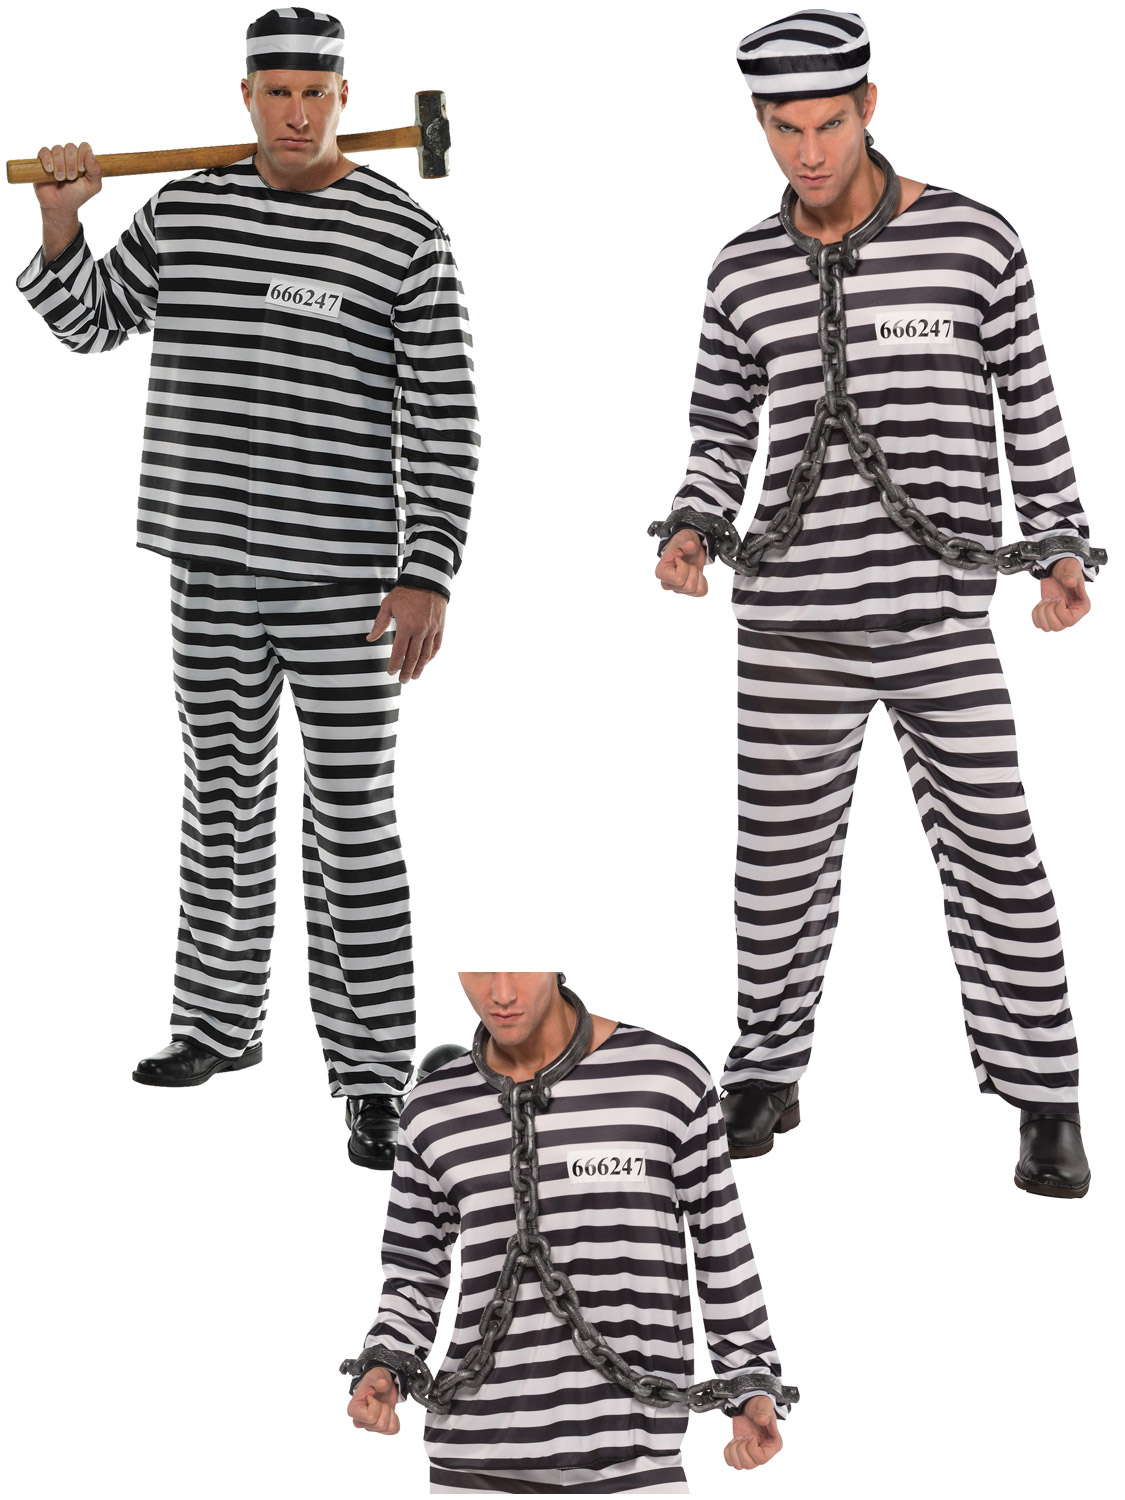 Mens jailbird con costume adult prisoner convict fancy dress transform yourself into a scary prisoner with this jail bird con costume ideal for a themed party or halloween solutioingenieria Image collections